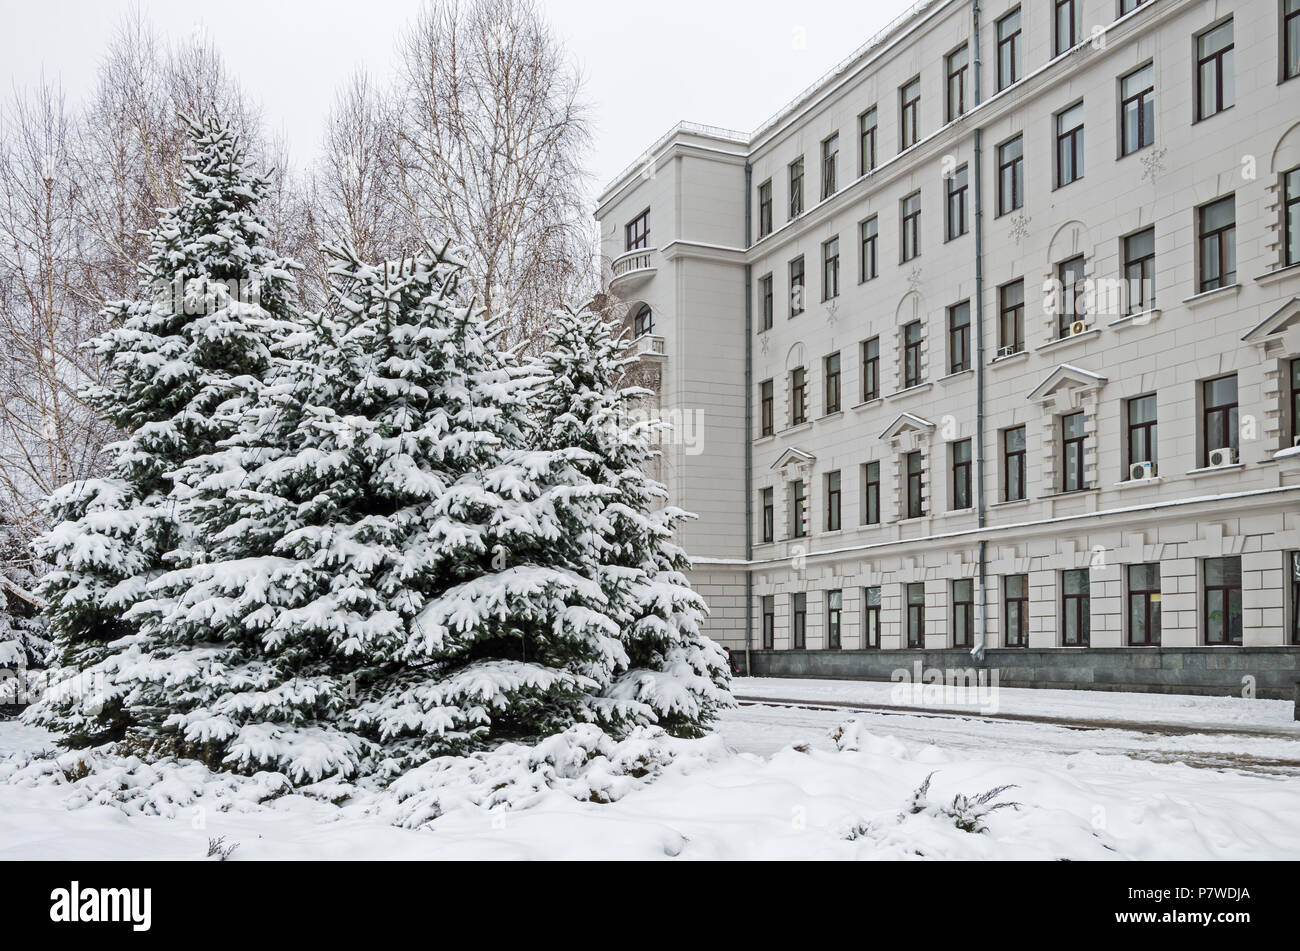 Cold January snow covered spruces in the city park against backdrop of  administrative building - Stock Image